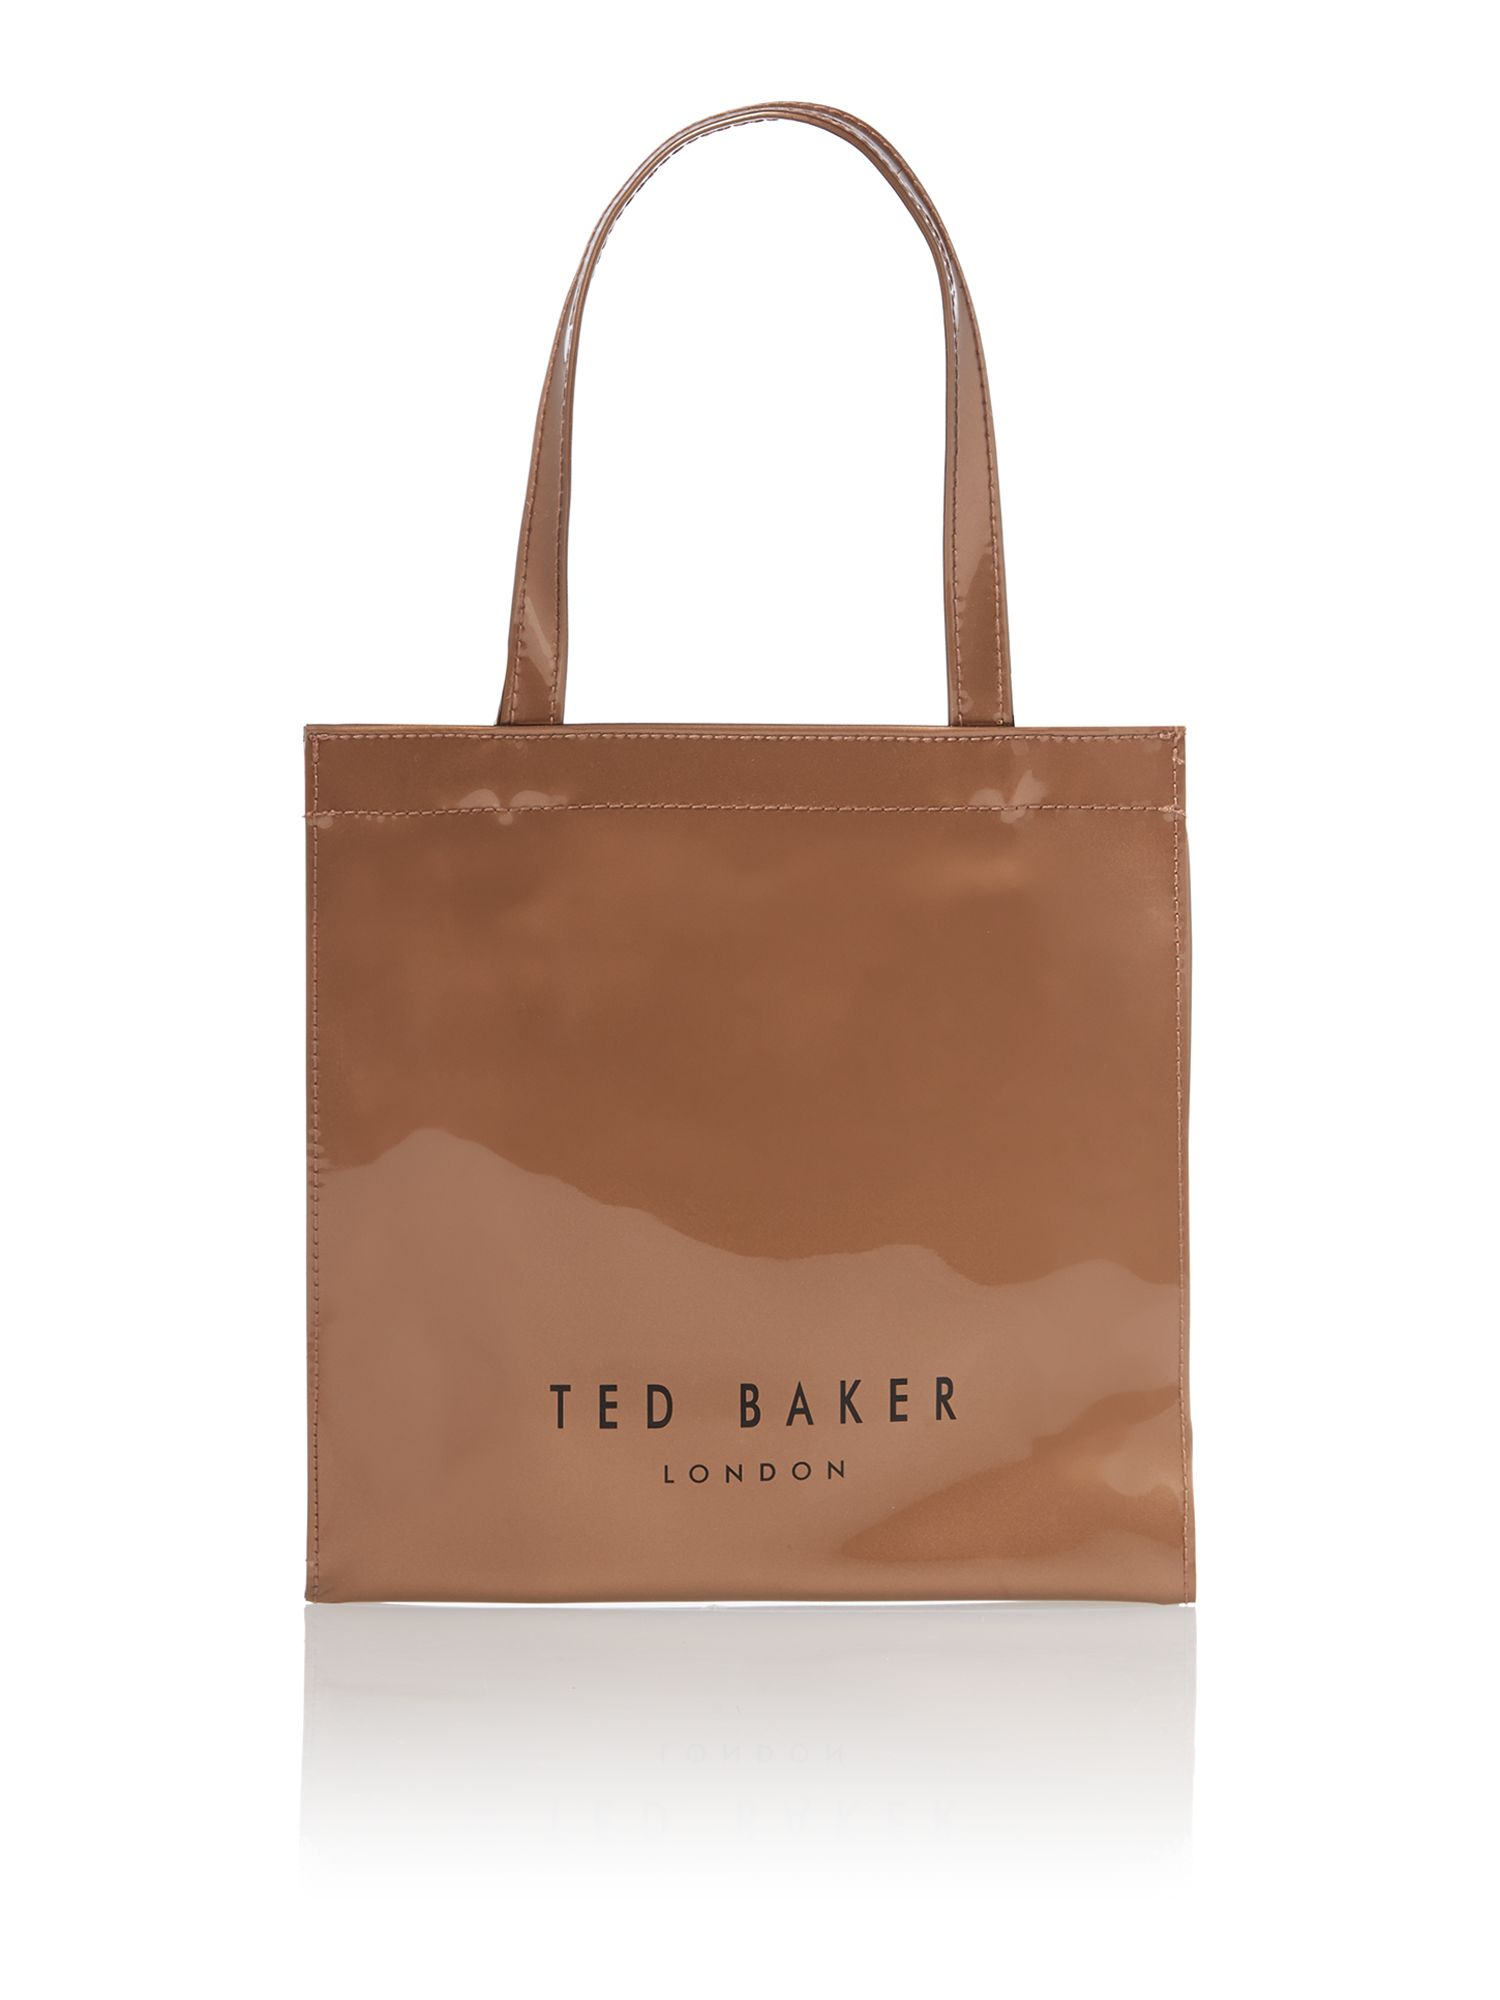 Ted Baker Rose Gold Small Bowcon Tote Bag in Brown